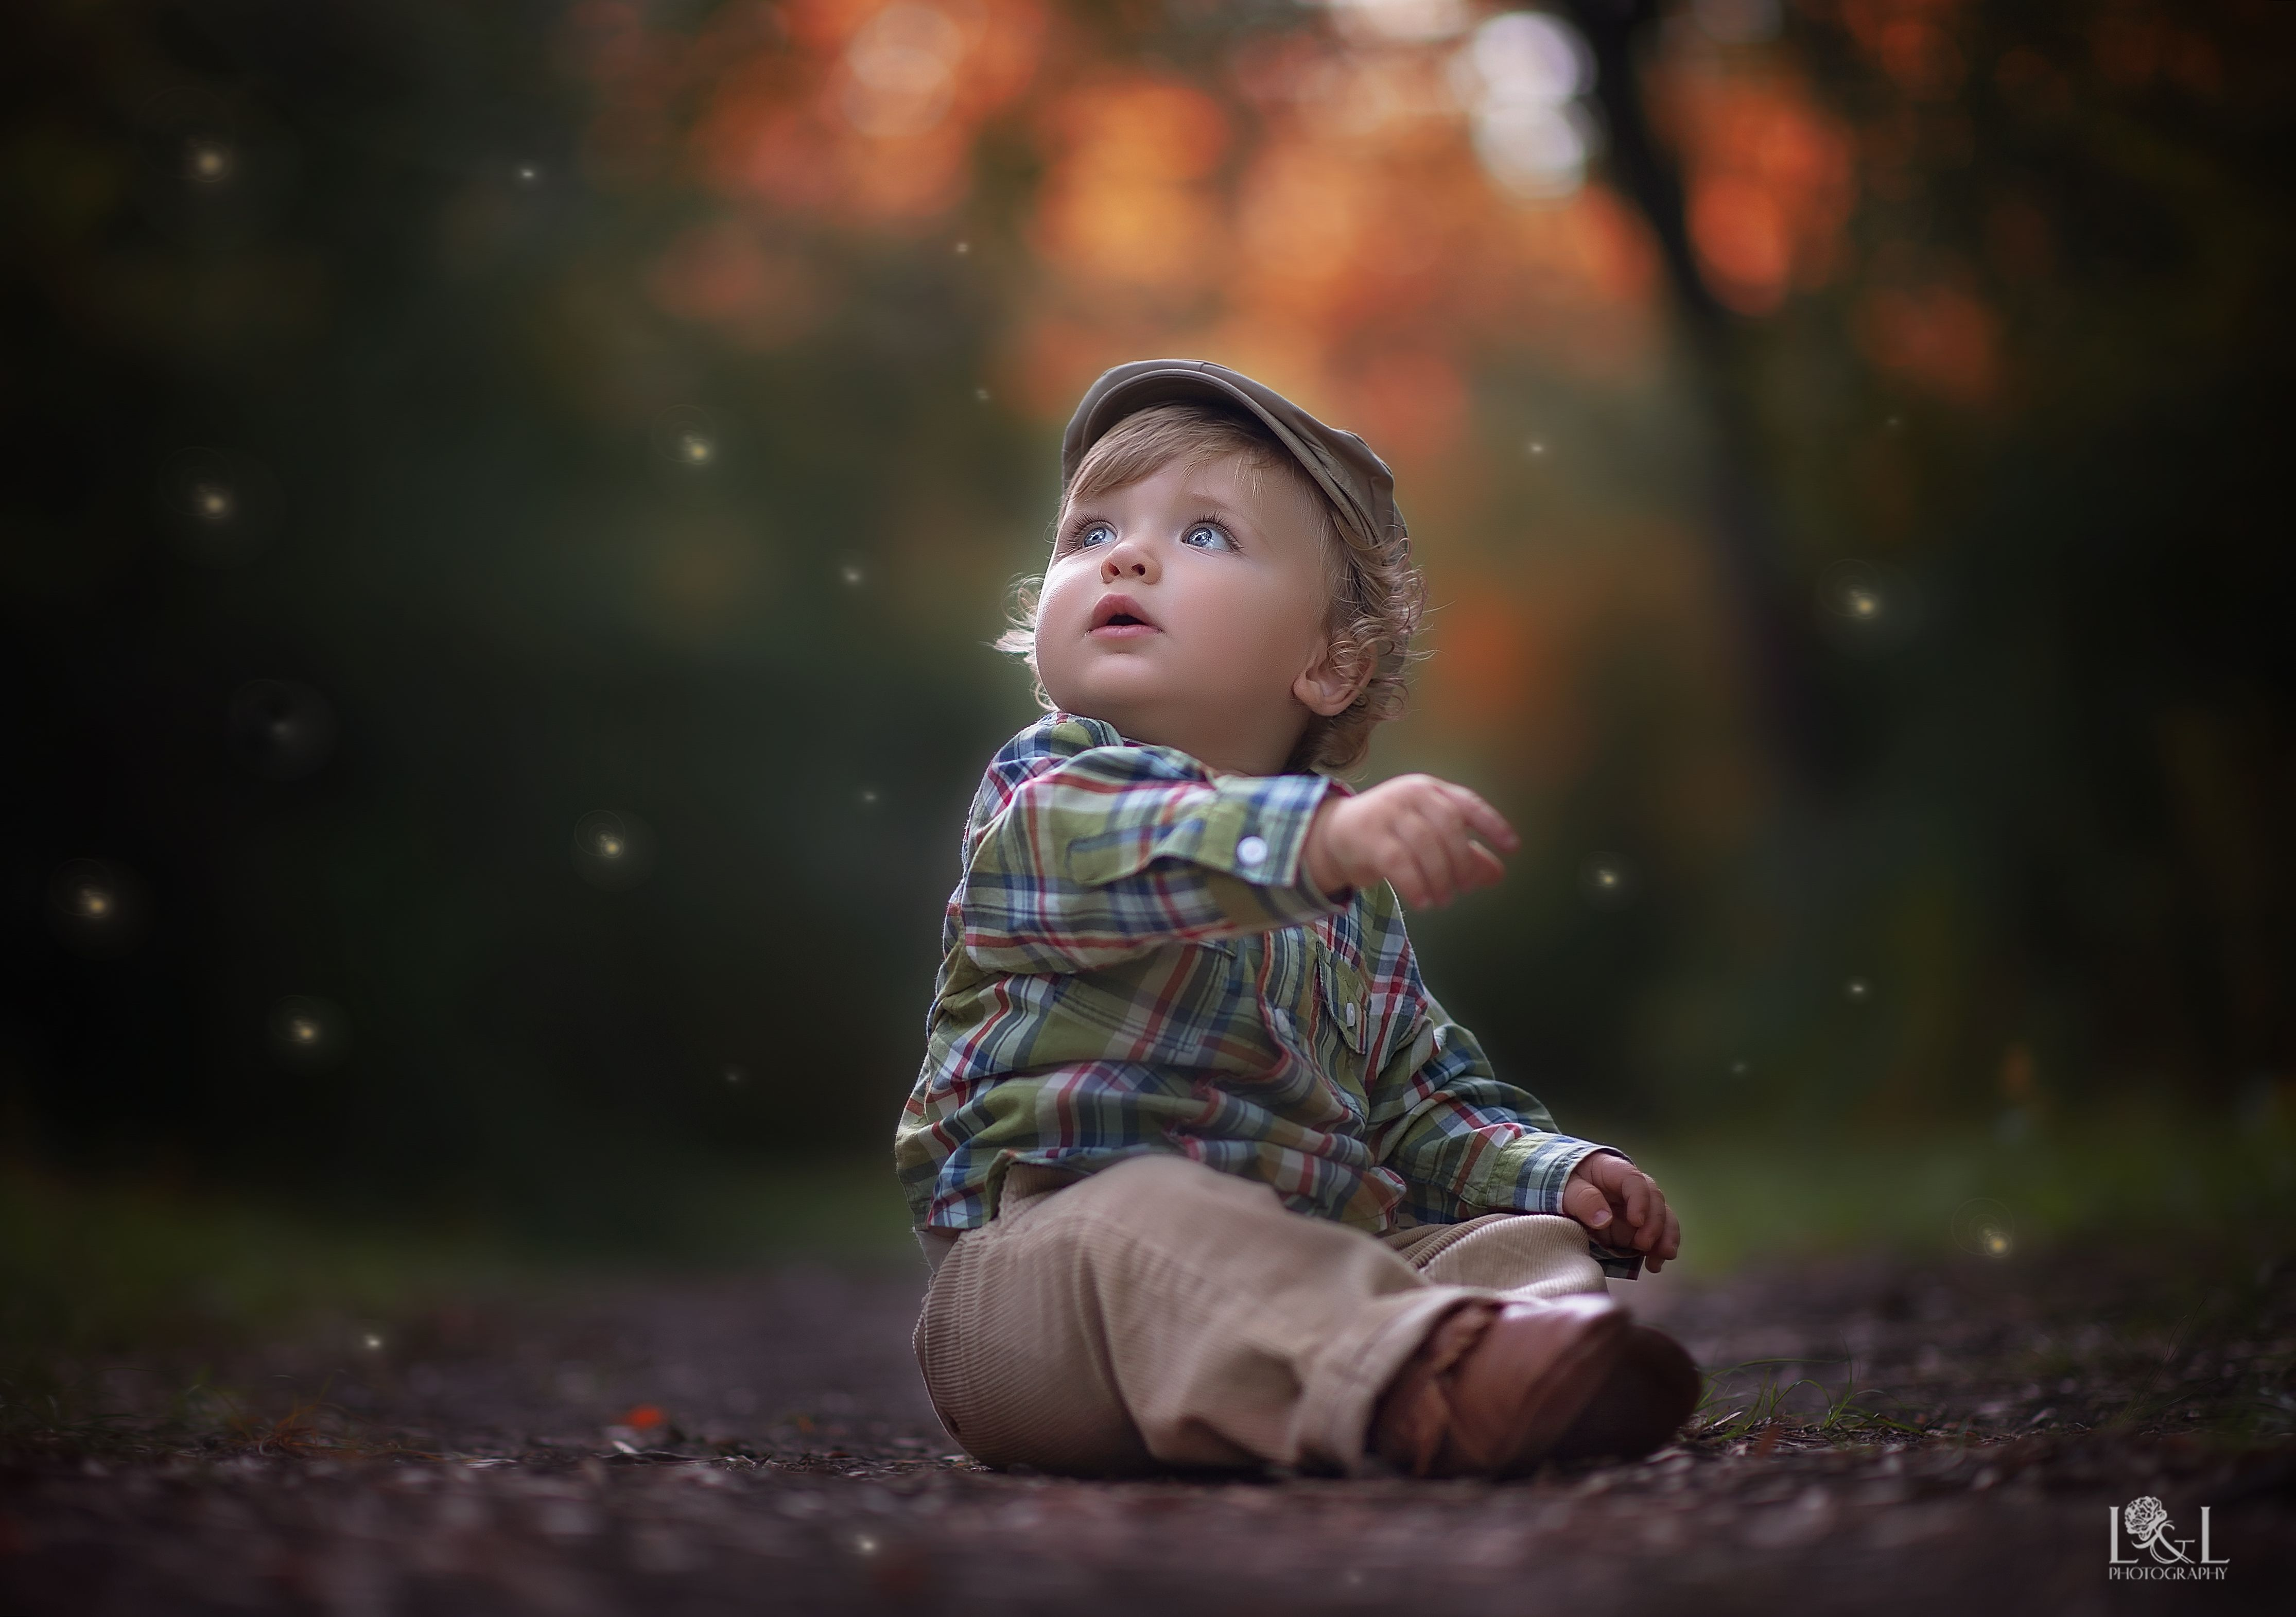 Cute Baby Pics Wallpapers 1920x1200 Hd 1080p Sweet Baby Wallpaper Cute Baby Wallpaper Baby Girl Wallpaper